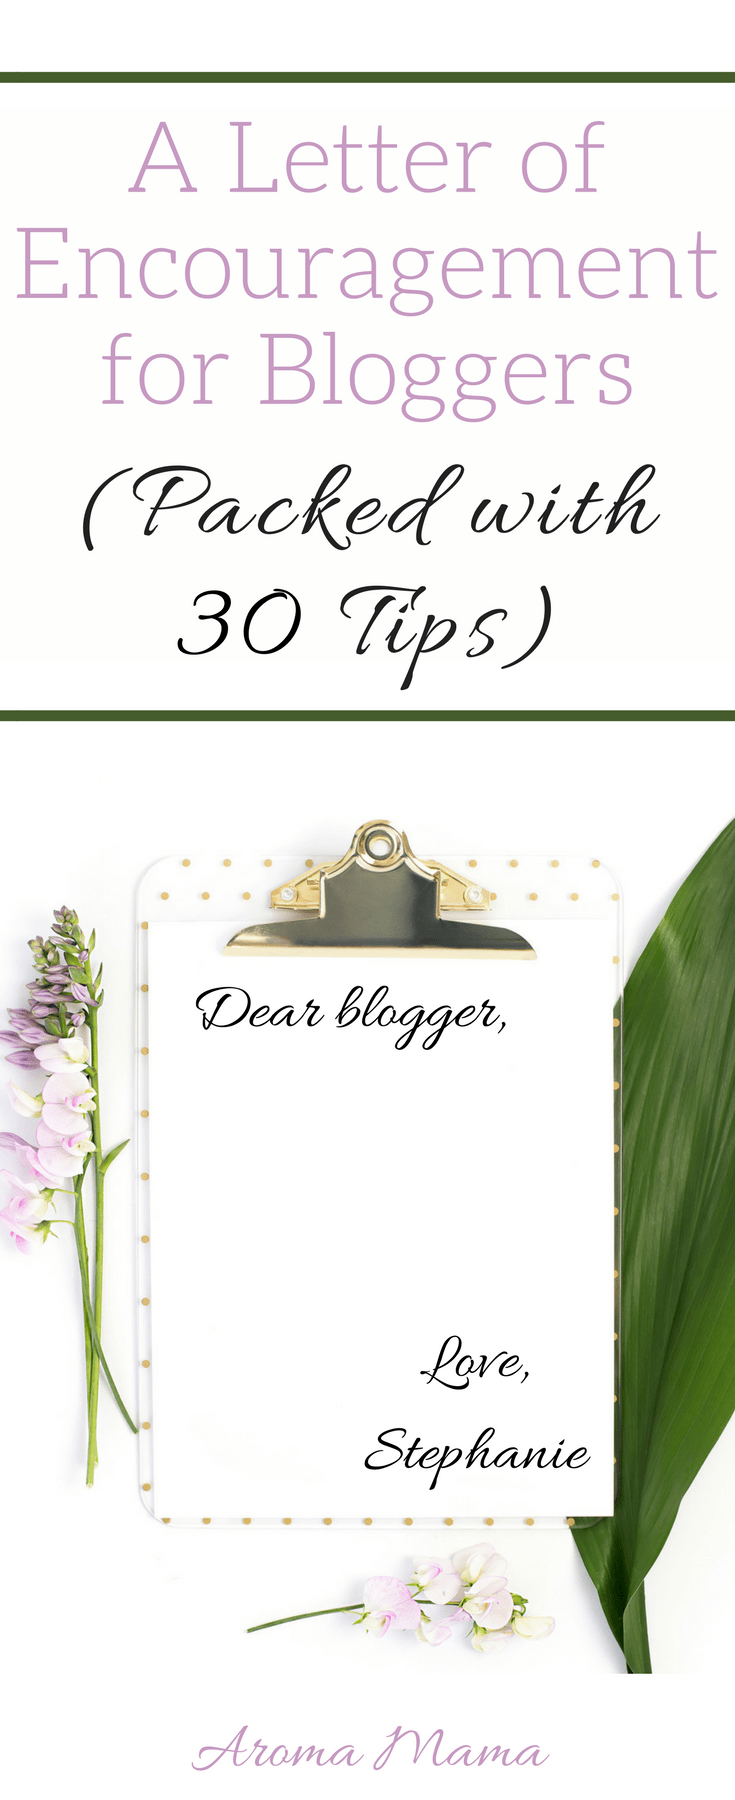 Dear blogger, I hear your struggles so I wrote you a letter of encouragement. It is packed with 30 tips to help you on your blogging journey.